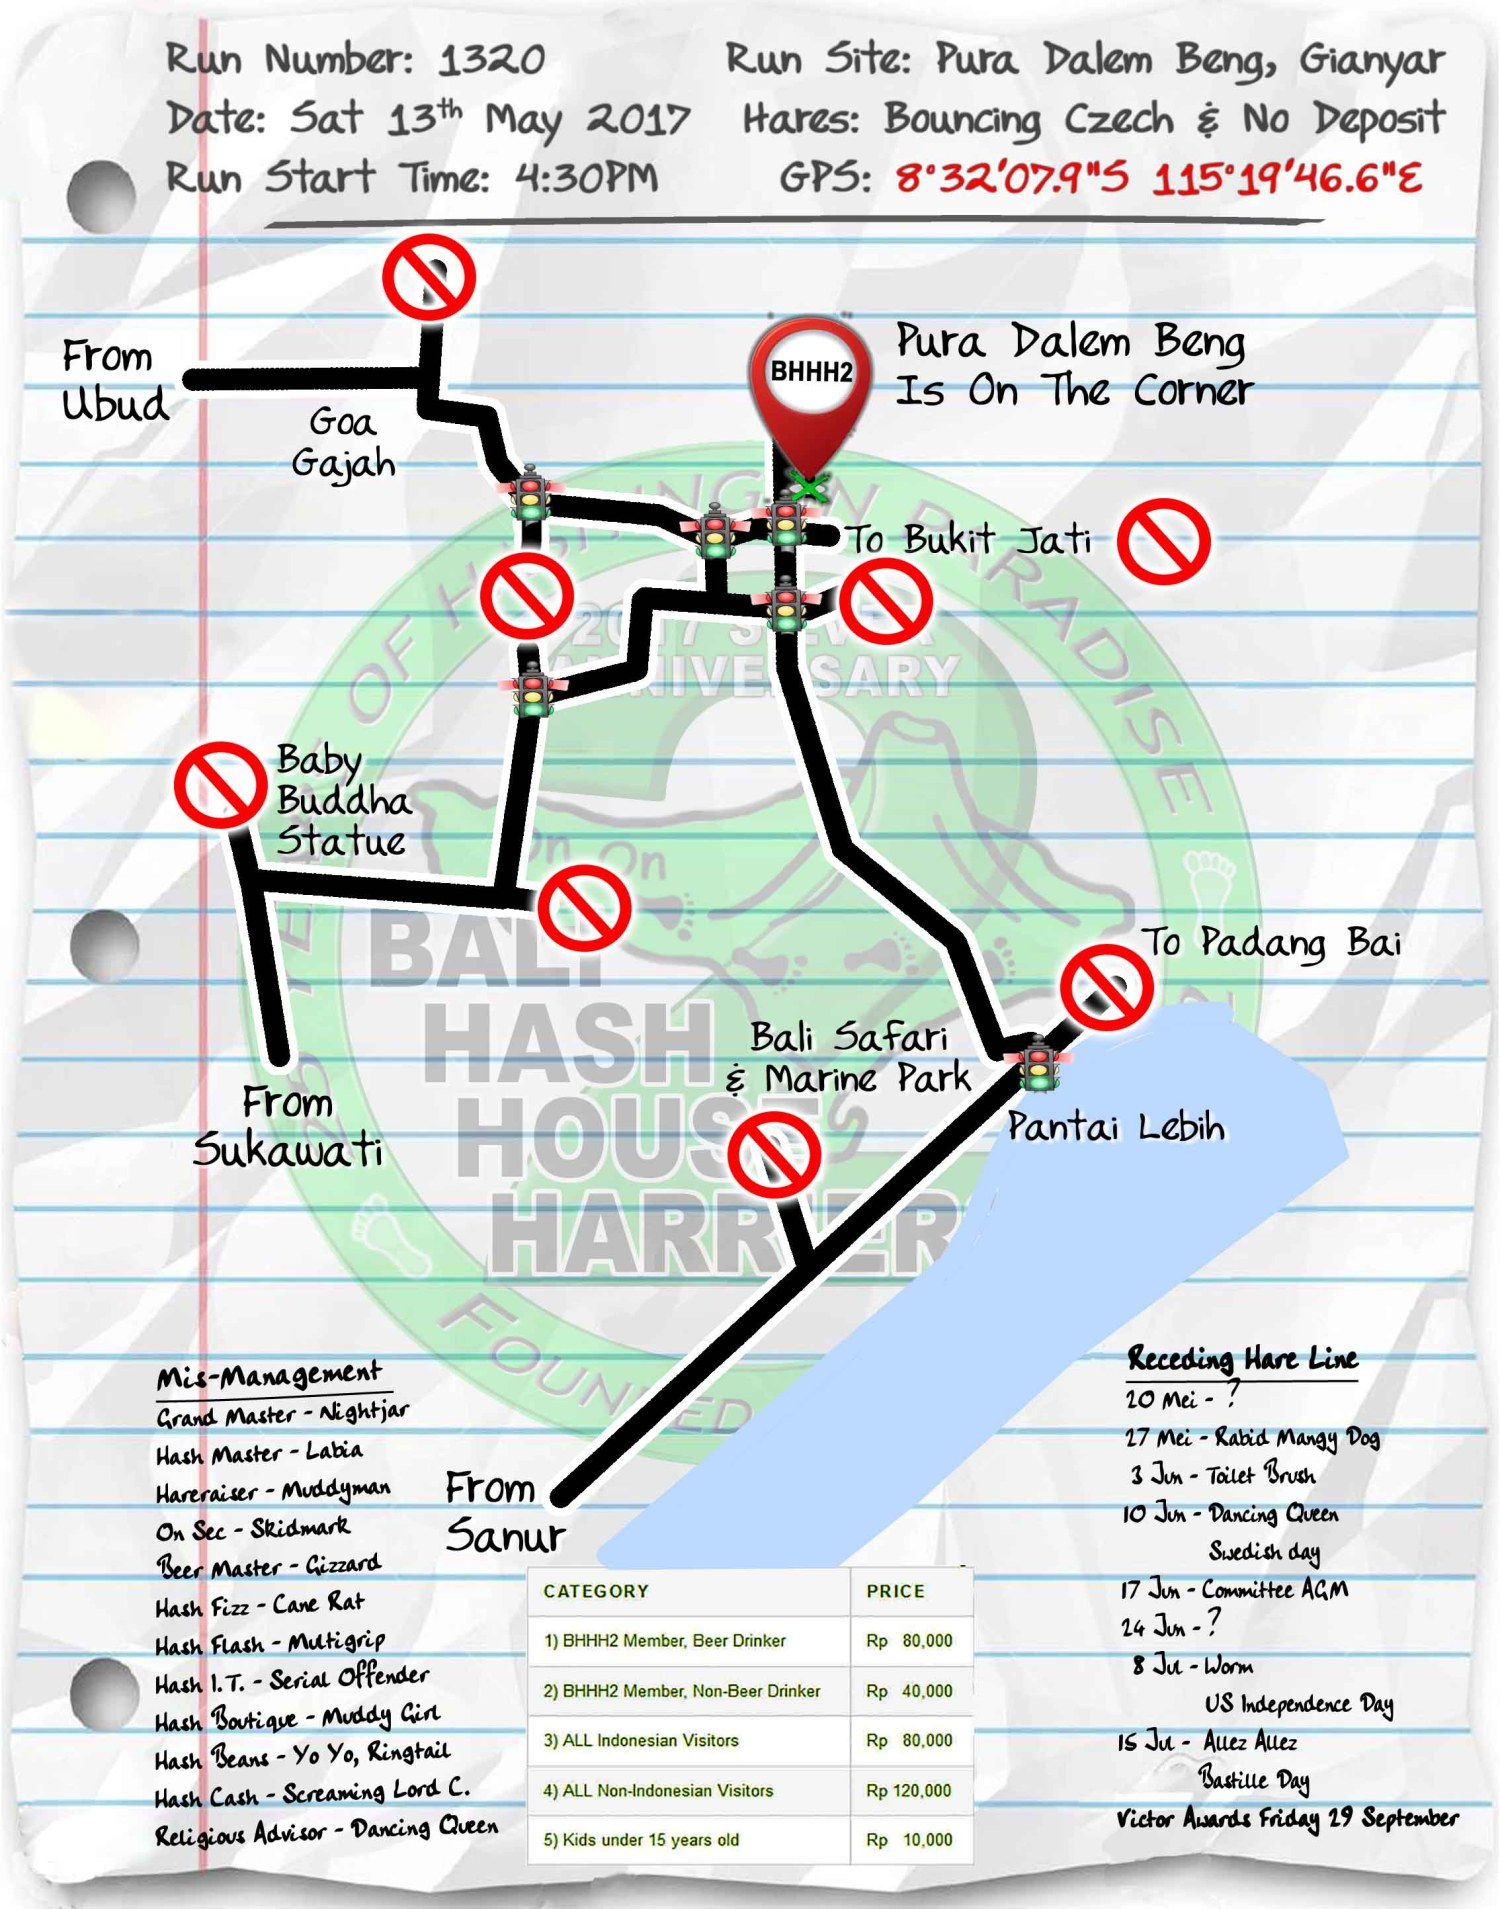 Next Run Map #1320 Pura Dalem Beng Sat 13-May-2017